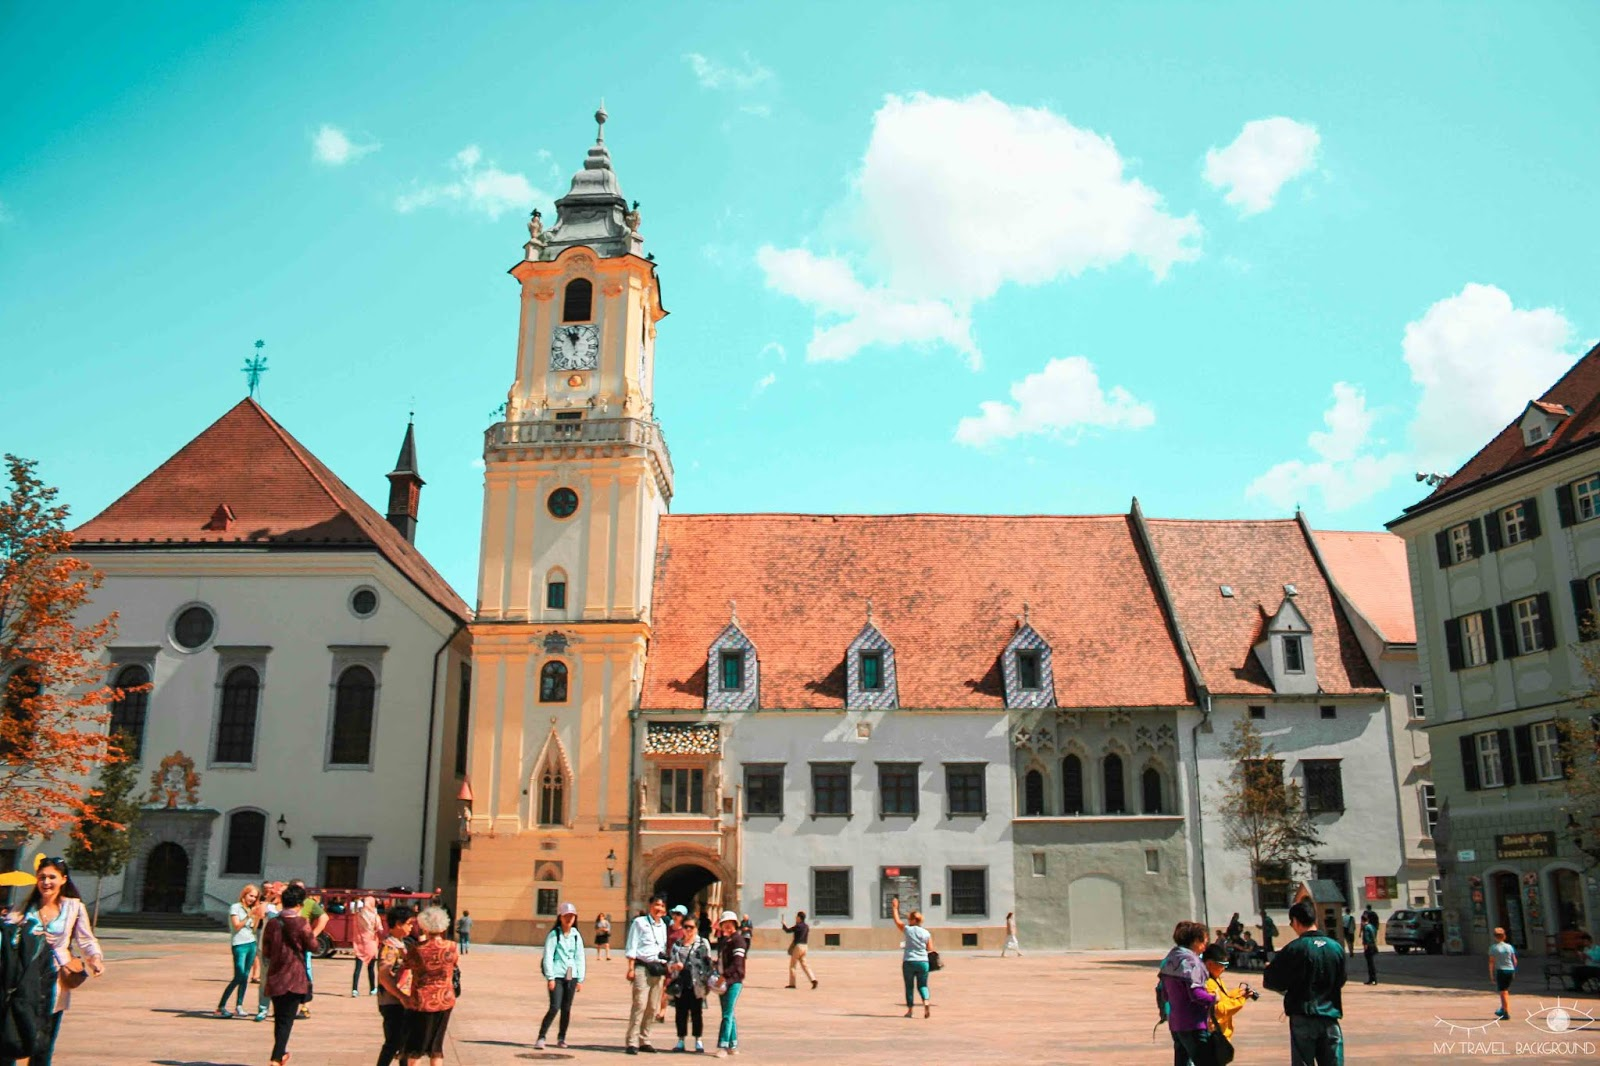 My Travel Background : visiter Bratislava, la capitale de la Slovaquie, en 1 jour